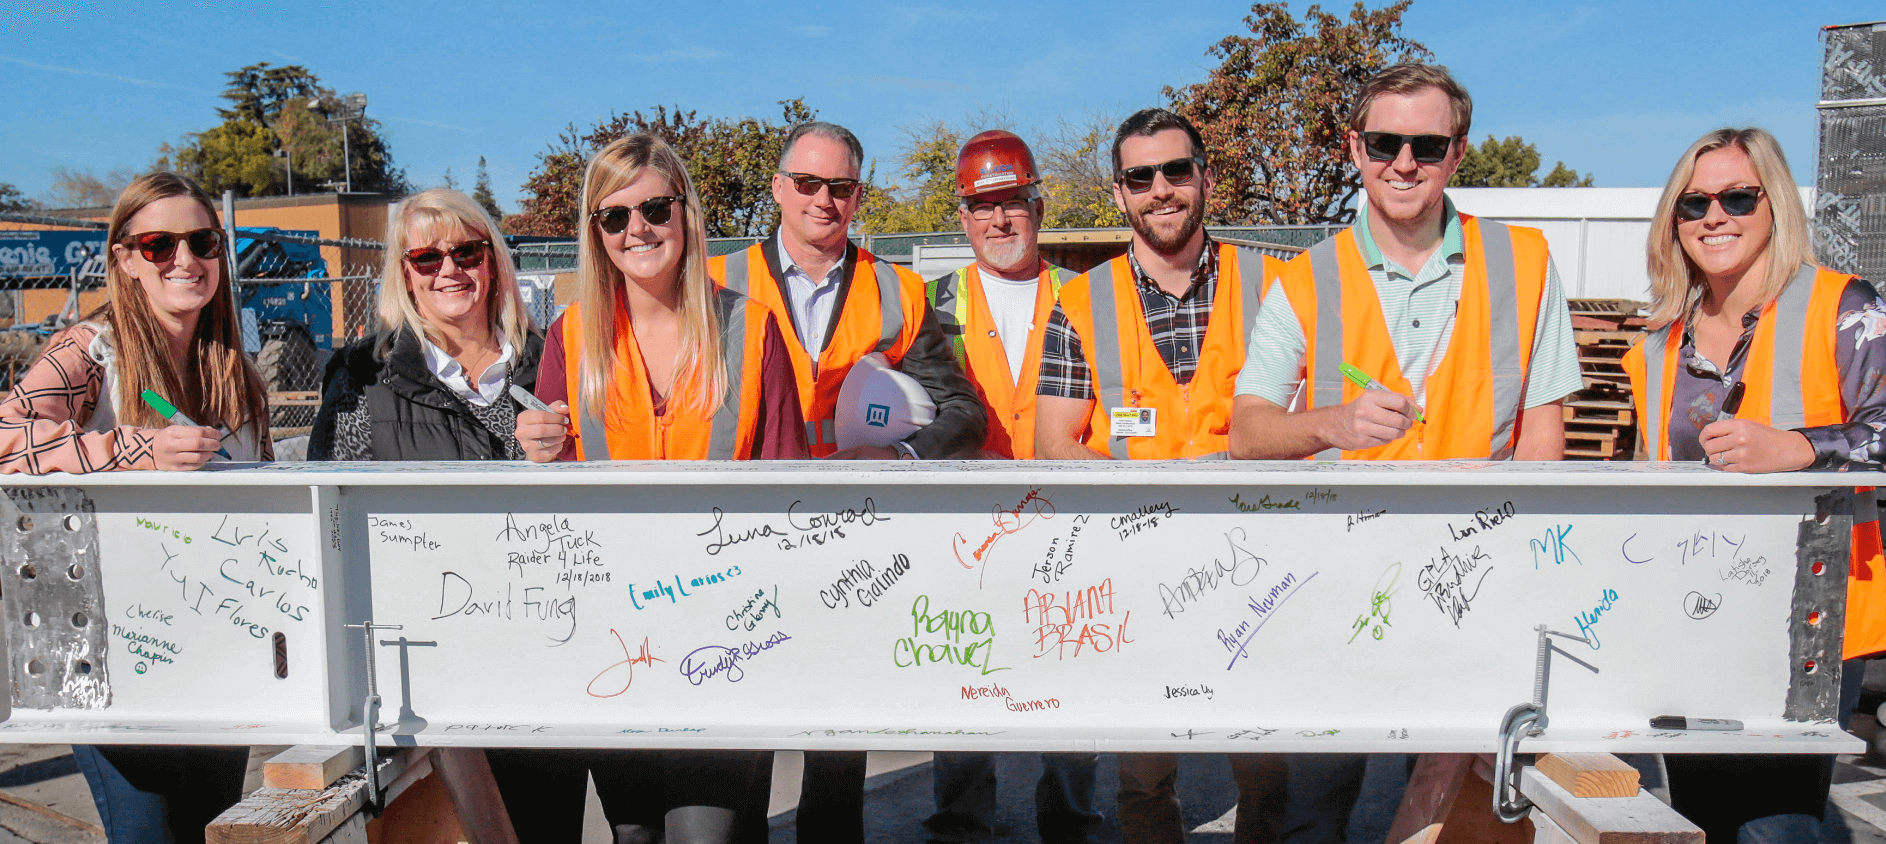 Blach construction employees beam signing